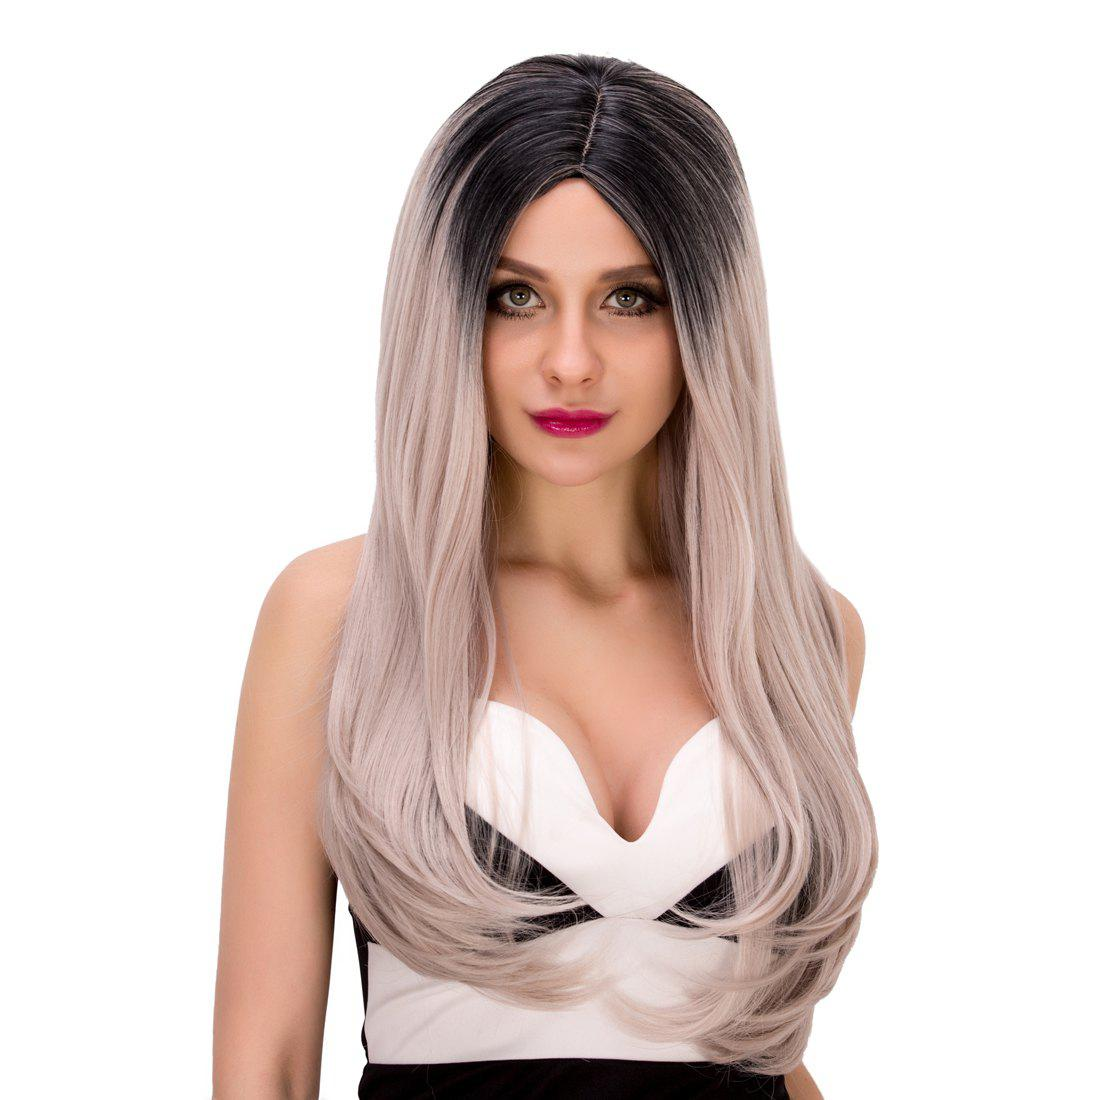 Fashion Women's Long Tail Adduction Centre Parting Mixed Color Synthetic Hair Wig - BLACK/GREY